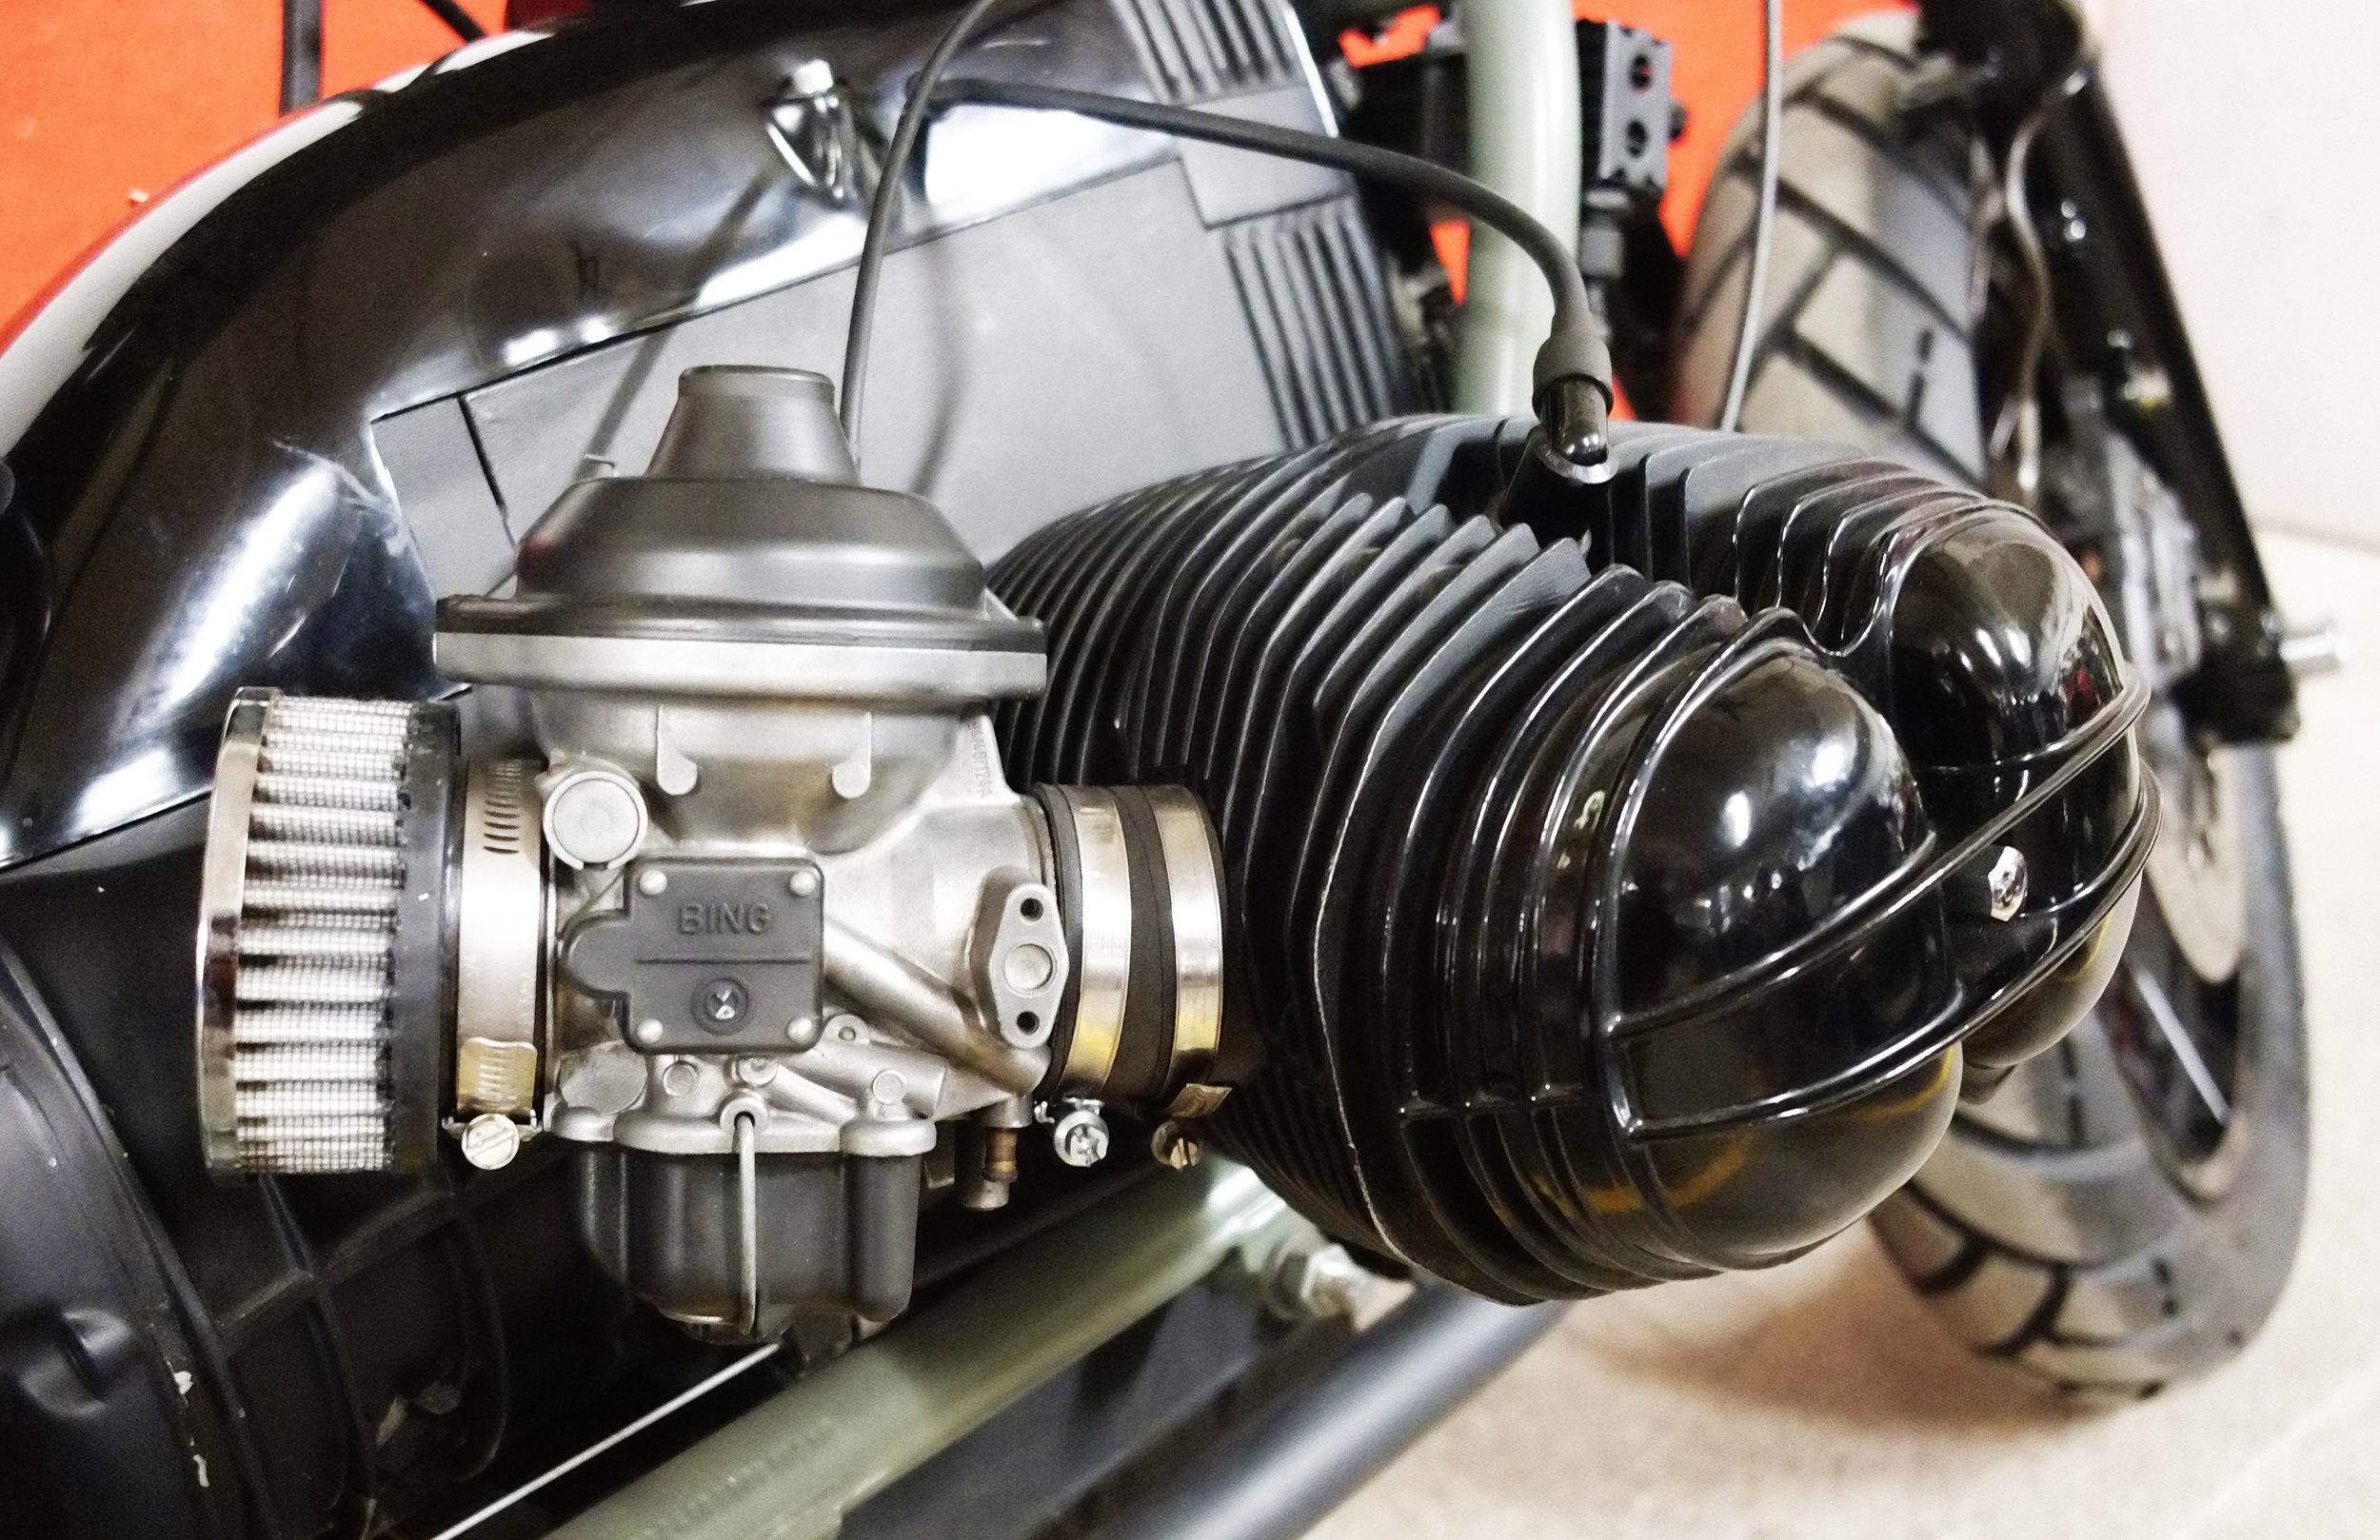 - Fully reconditioned and re-jetted  Bing  carburetors;  -  K&N  air filters;  - ceramic black painting of top and cup of the carburetors.